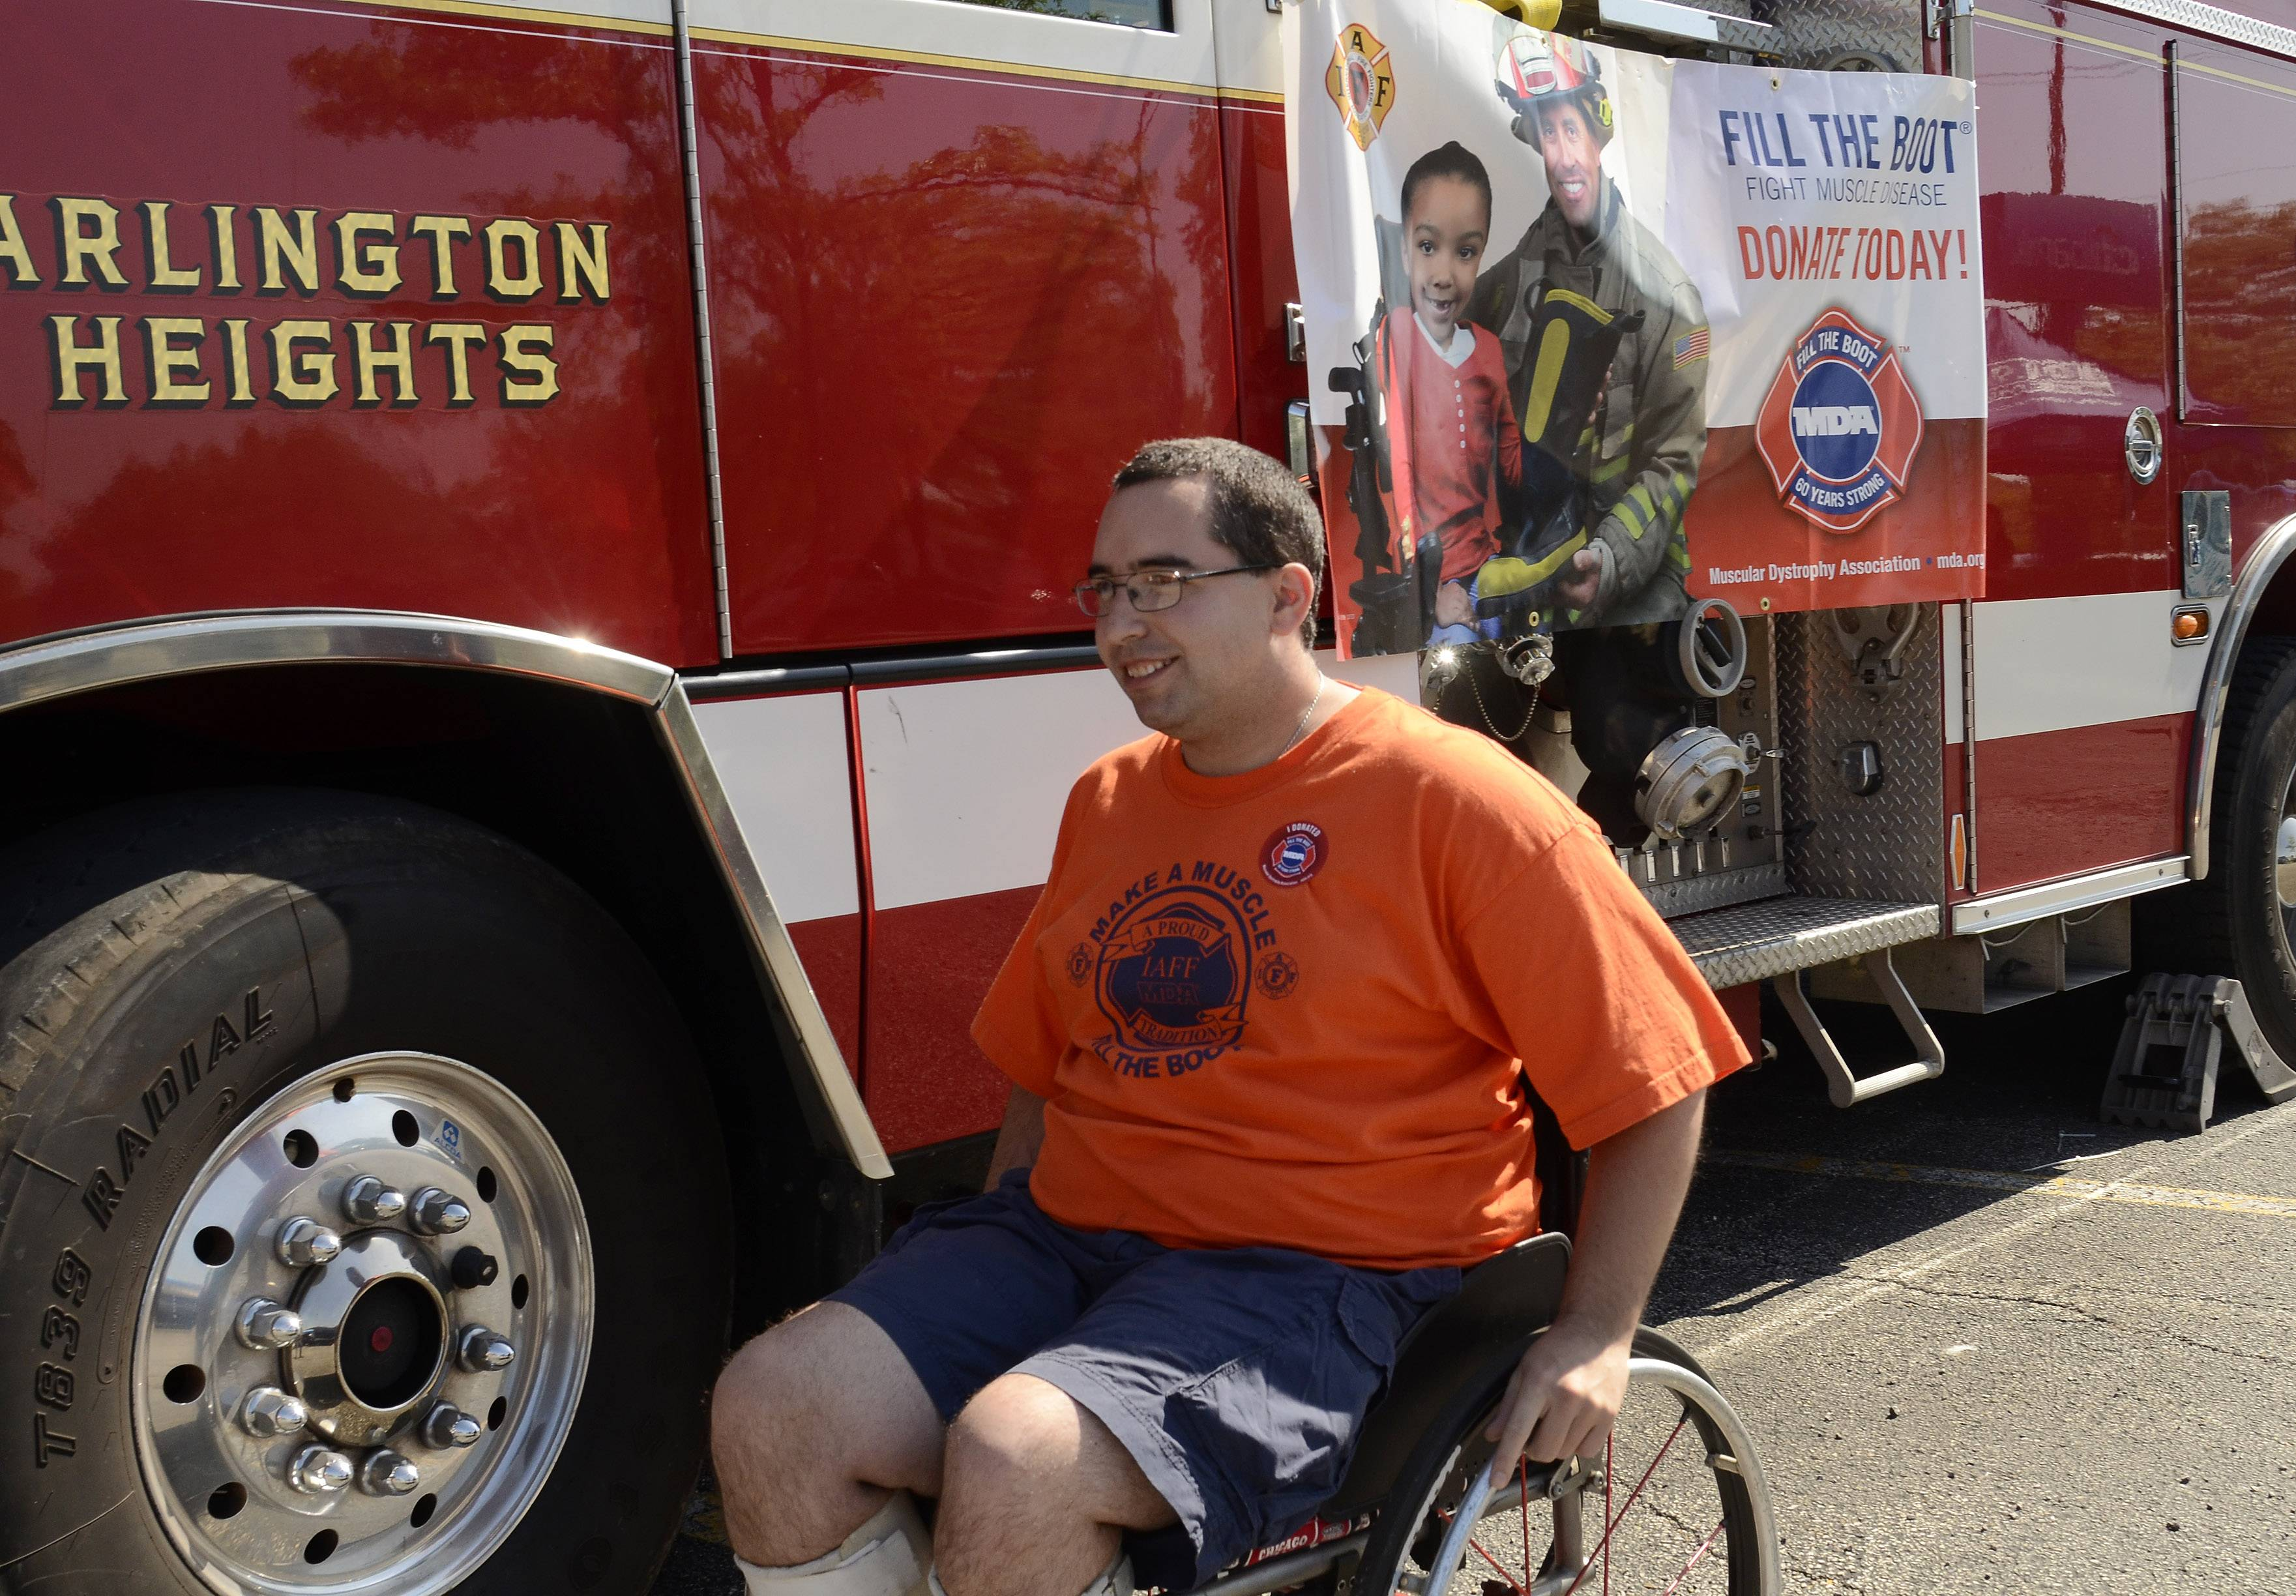 Seth Goldberg of Arlington Heights is the MDA ambassador for the Arlington Heights firefighters Fill the Boot campaign for the 5th year, working Friday at the intersection of Palatine and Arlington Heights Roads.